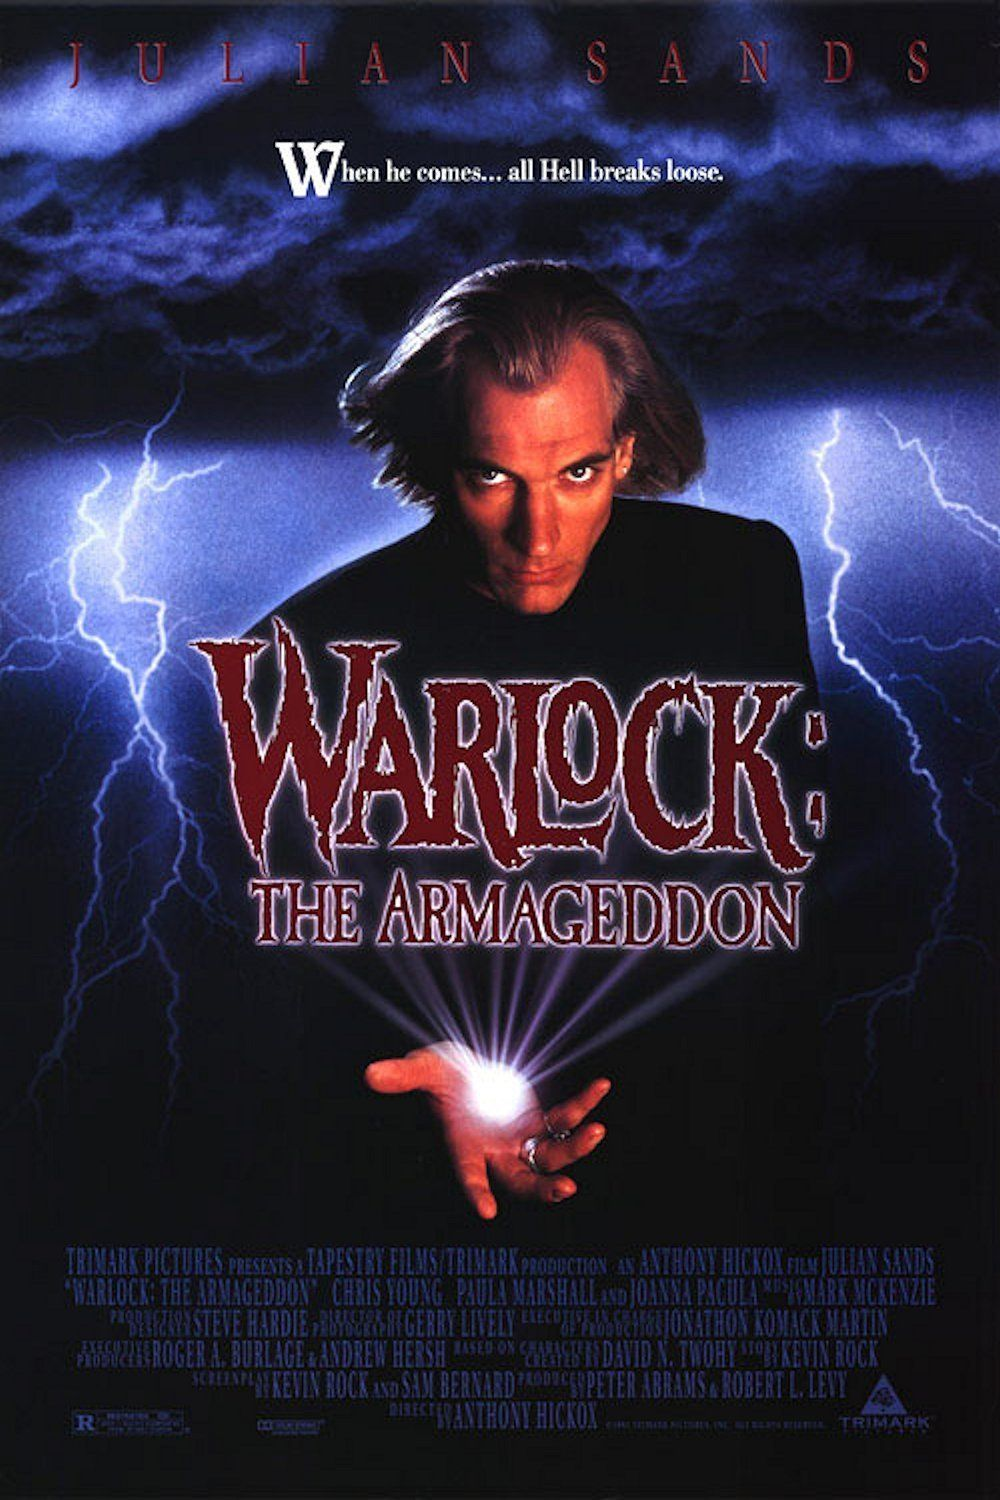 Warlock The Armageddon (1993) Movie Review (With images